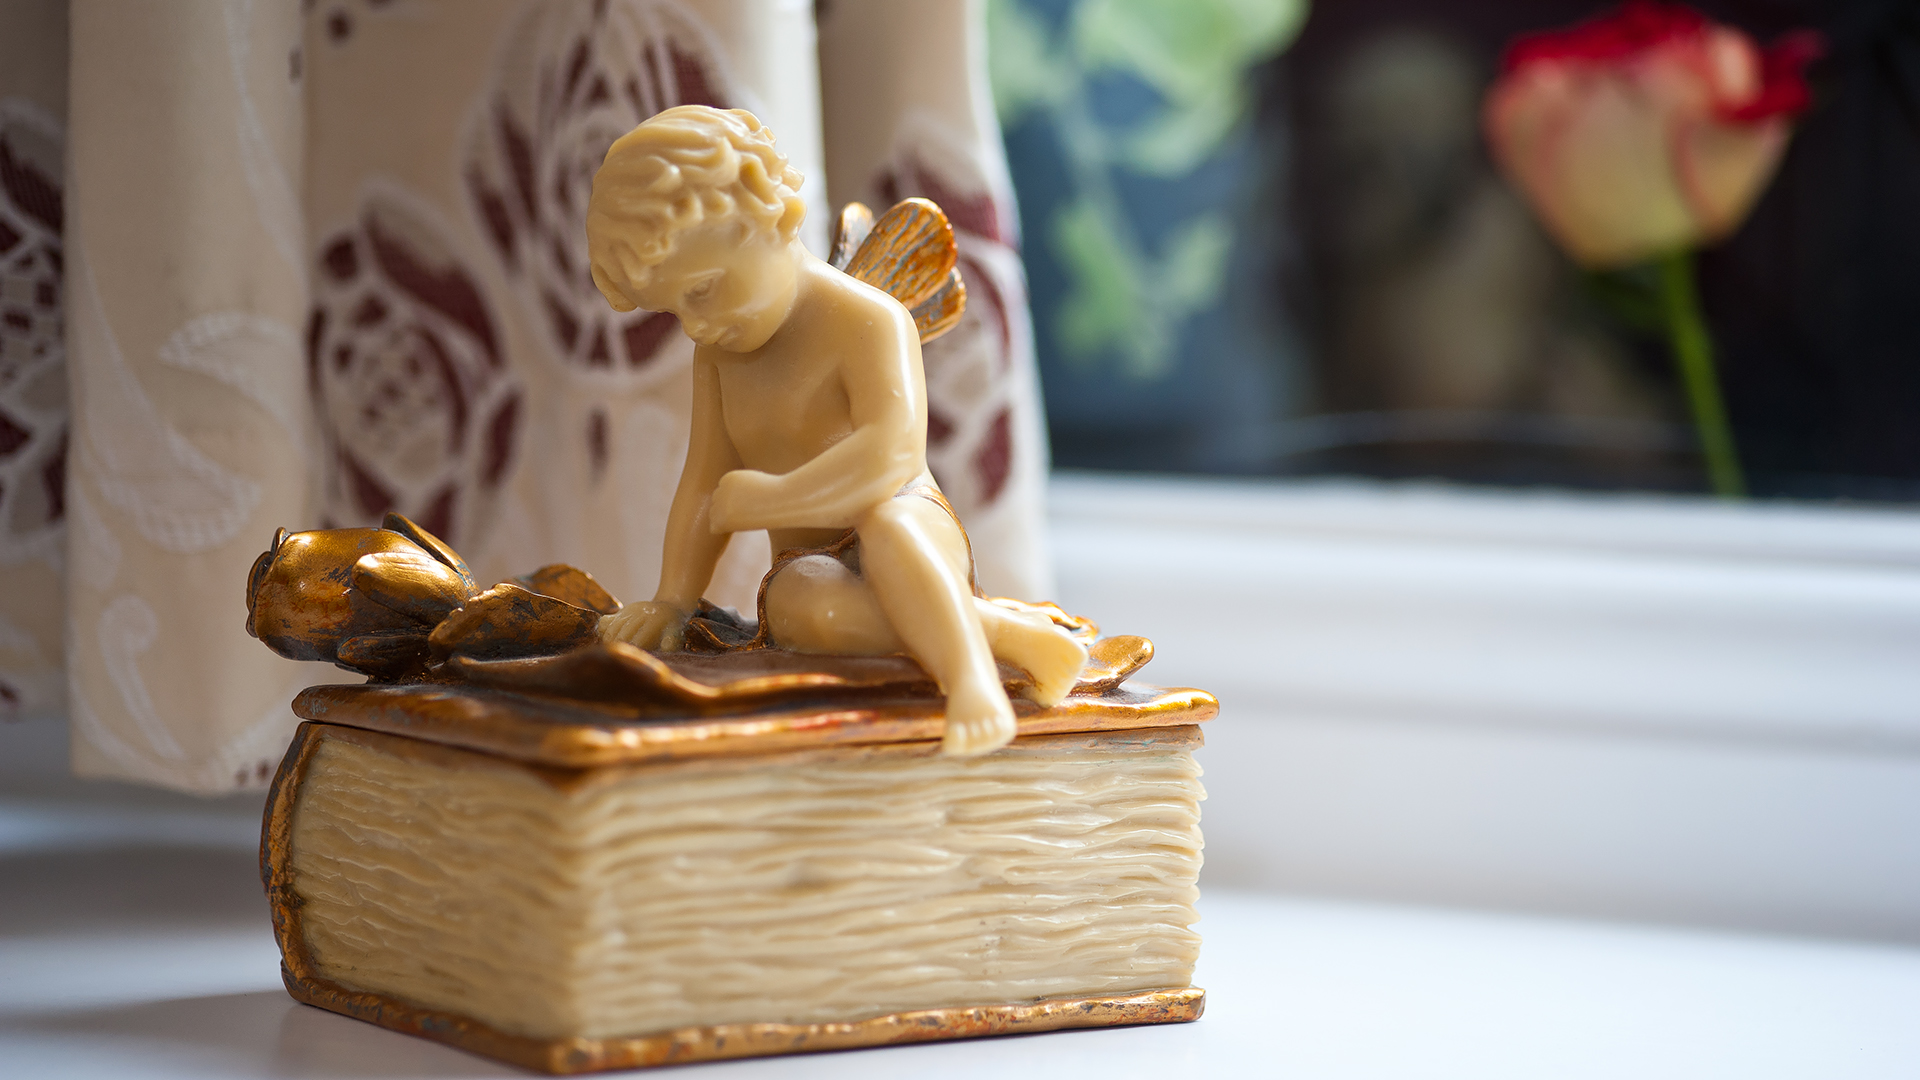 Room Decor: ornament of angel reading on a pottery book